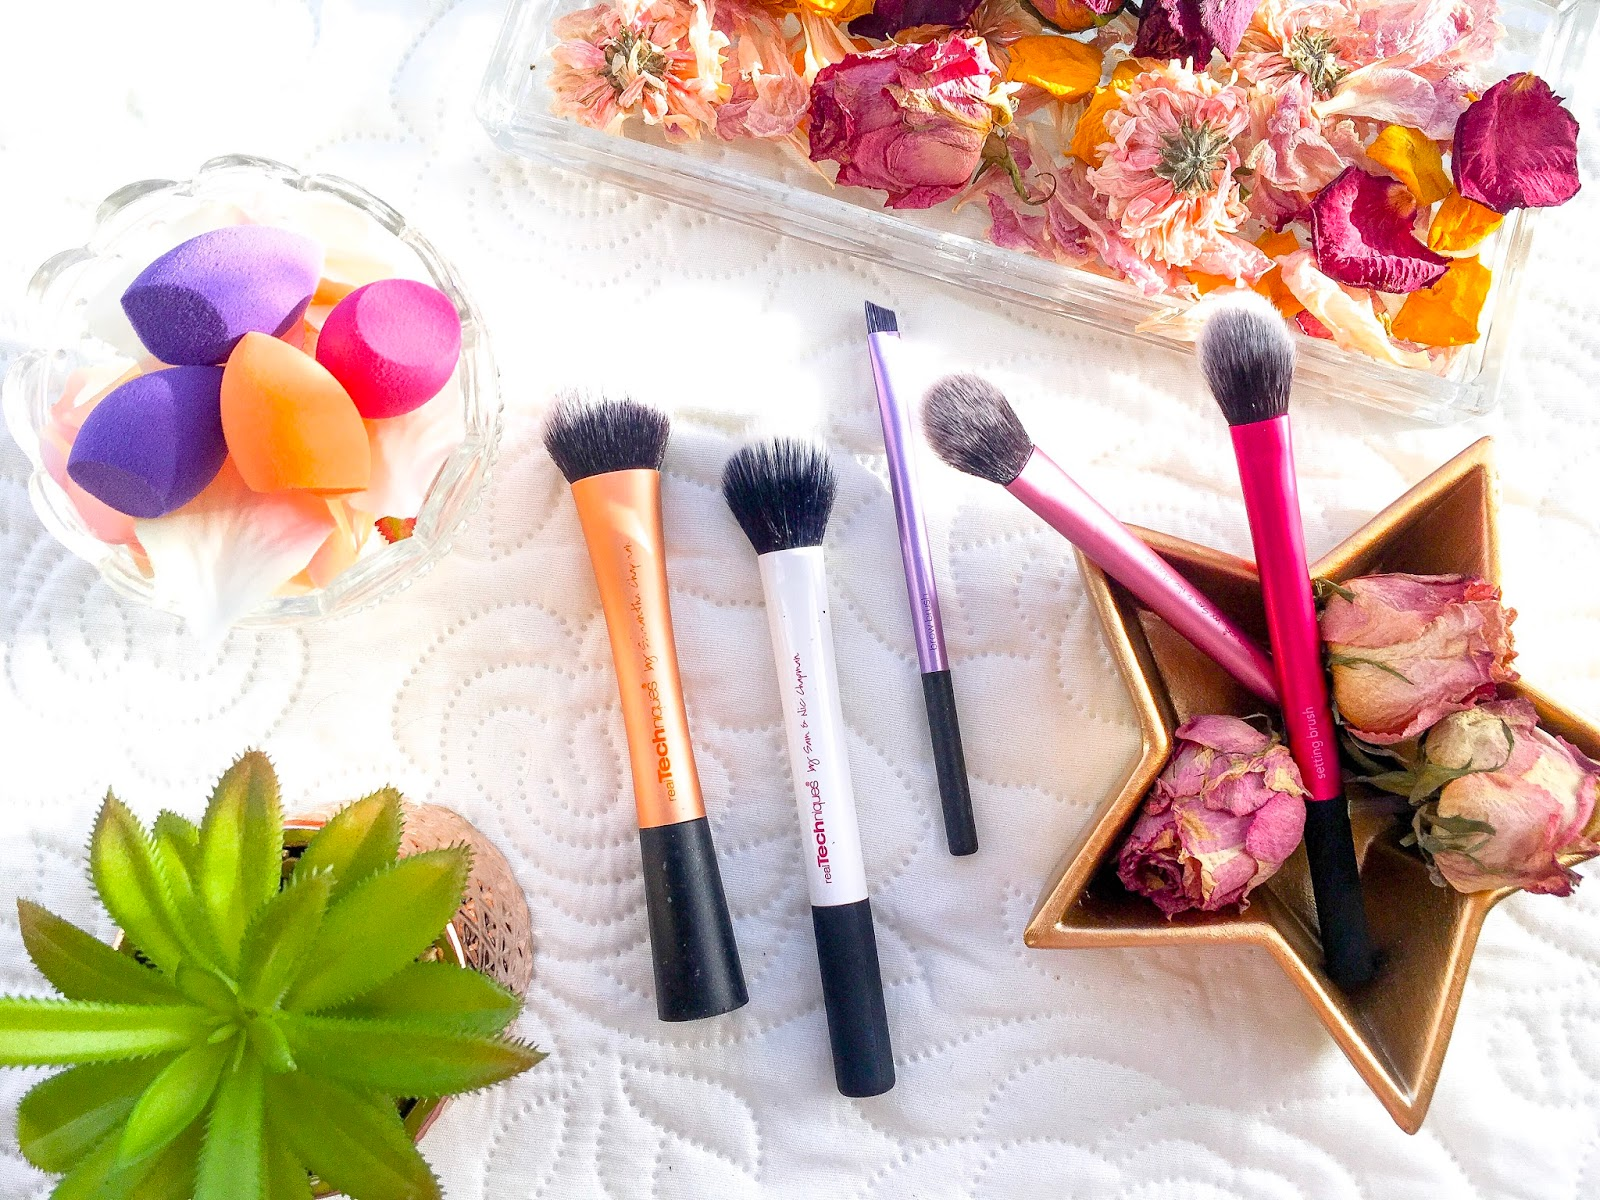 best real techniques brushes, best affordable makeup brushes, the only makeup brushes you need, top budget brushes for makeup, real techniques expert face brush, real techniques setting brush, real techniques brow brush, real techniques mini miracle makeup sponges, real techniques duo fiber contour brush